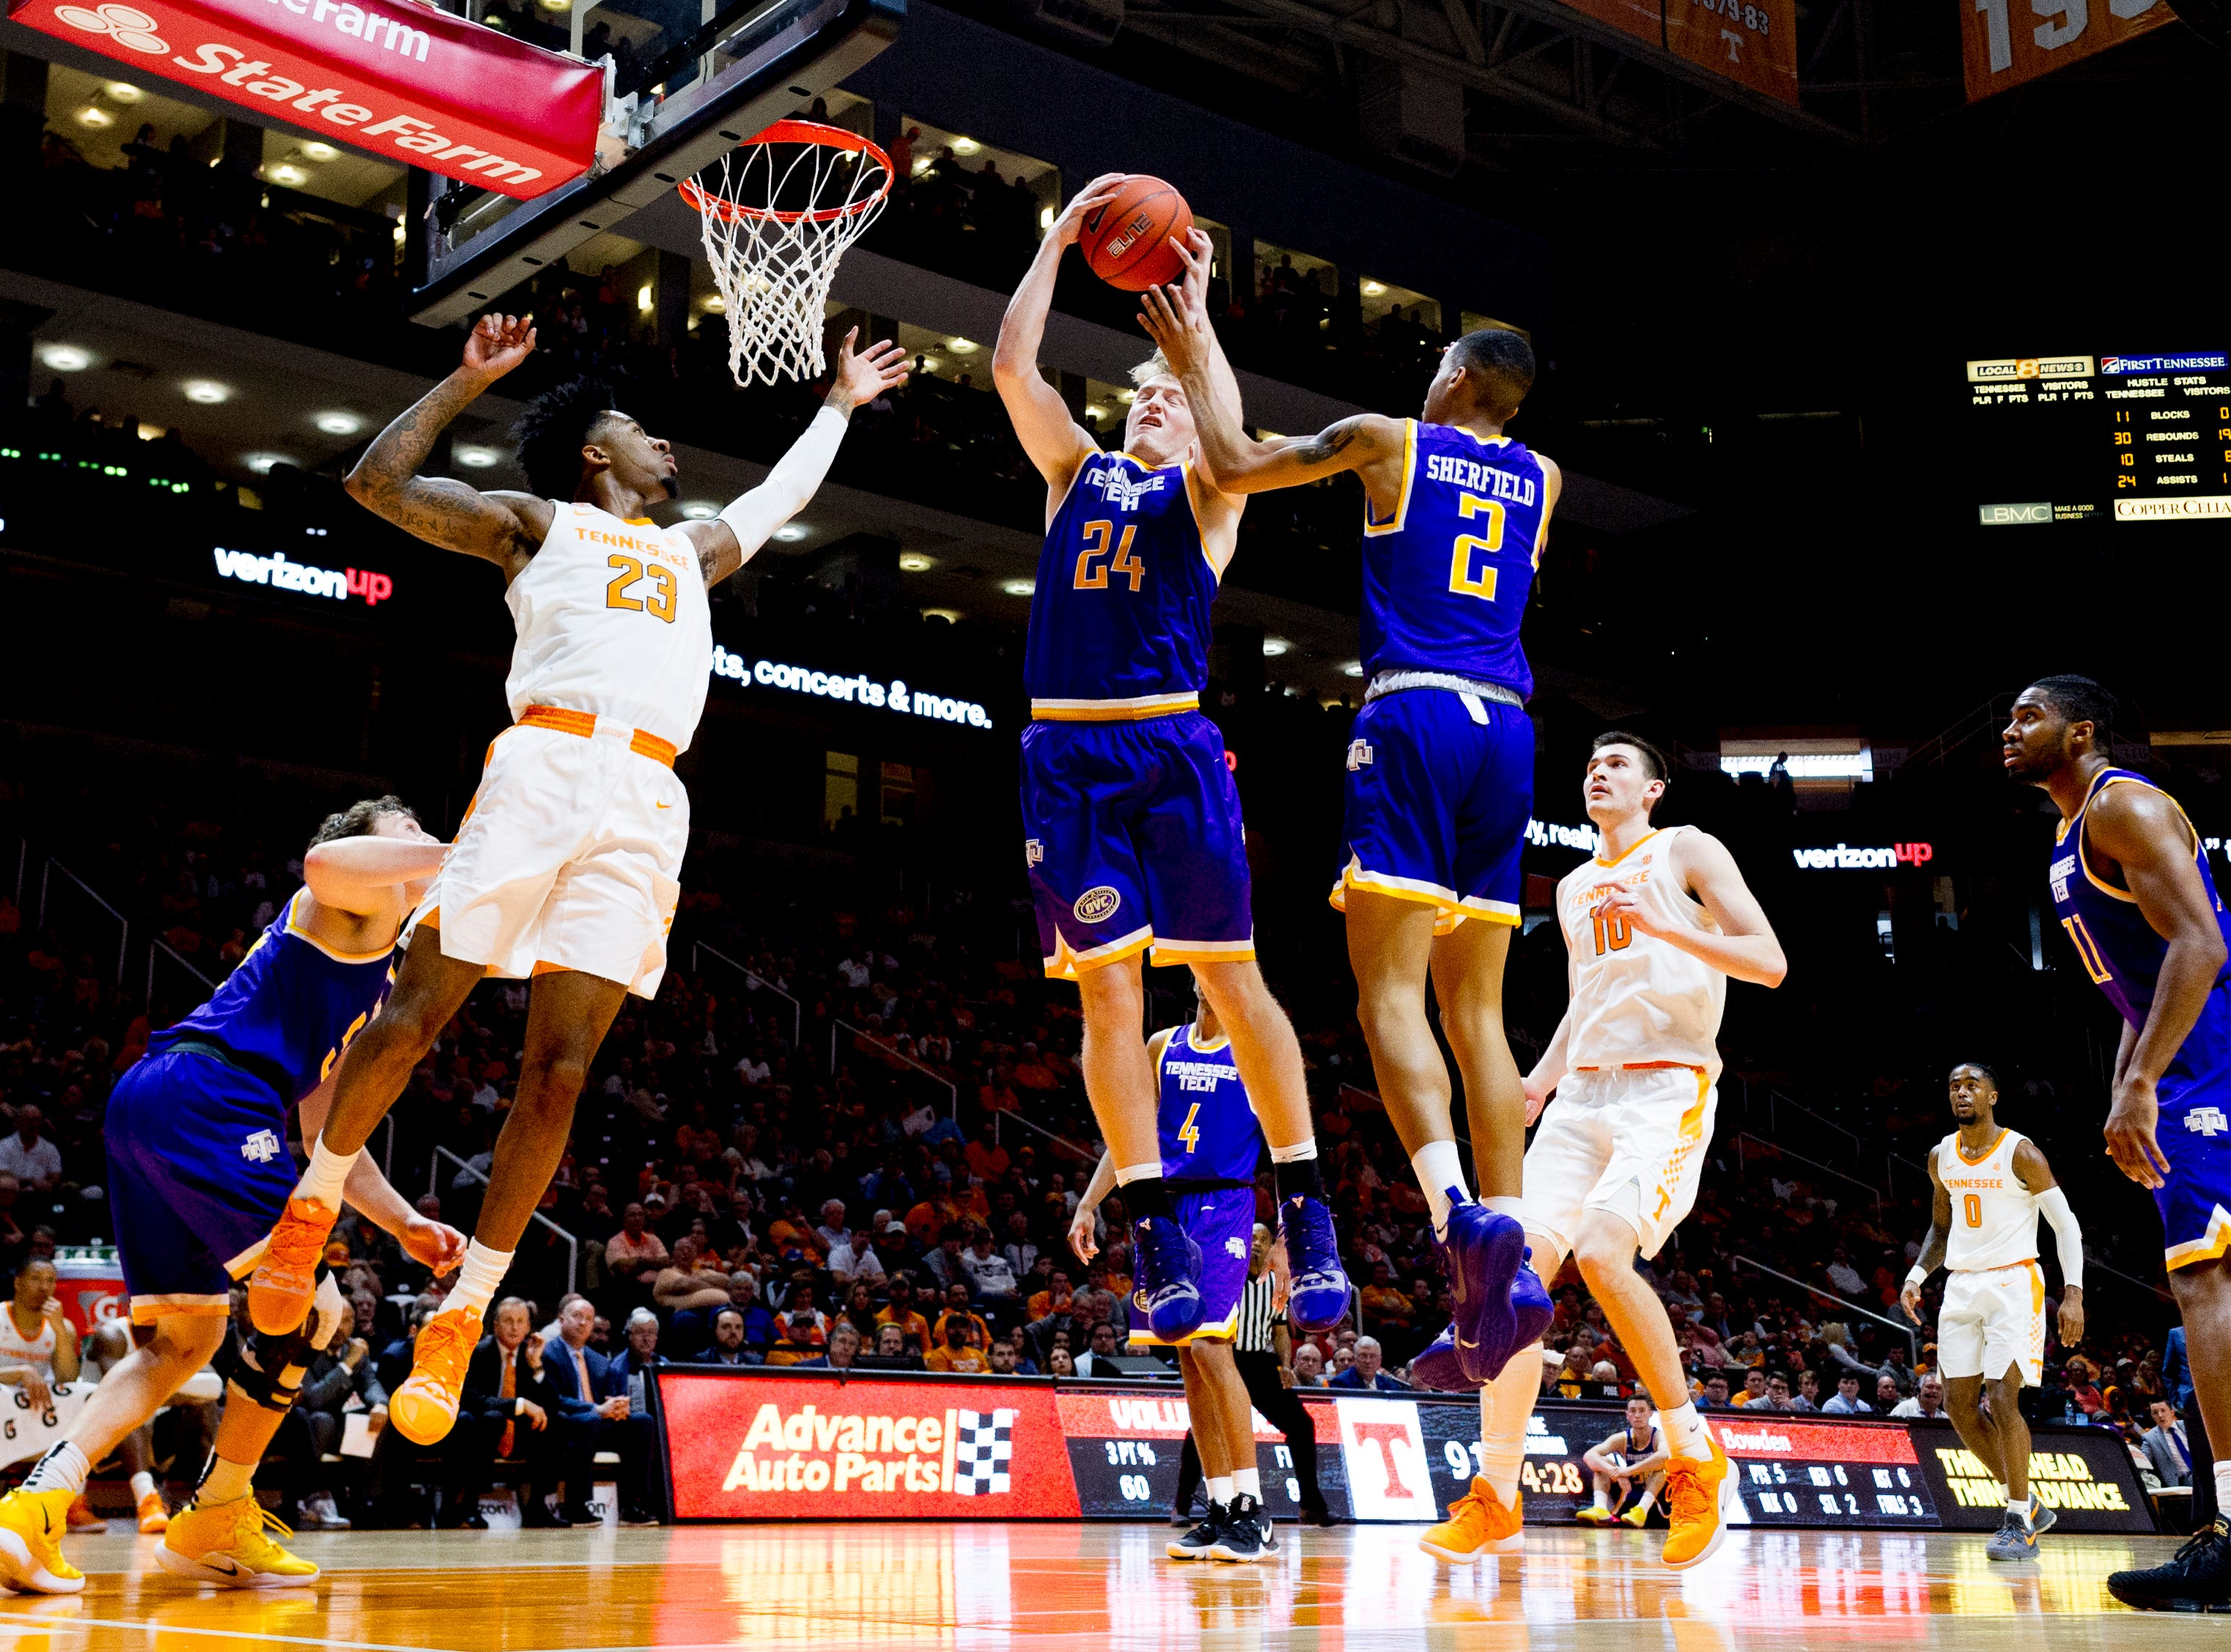 Tennessee Tech forward Garrett Golday (24) grabs the rebound ball during a game between Tennessee and Tennessee Tech at Thompson-Boling Arena in Knoxville, Tennessee on Saturday, December 29, 2018.